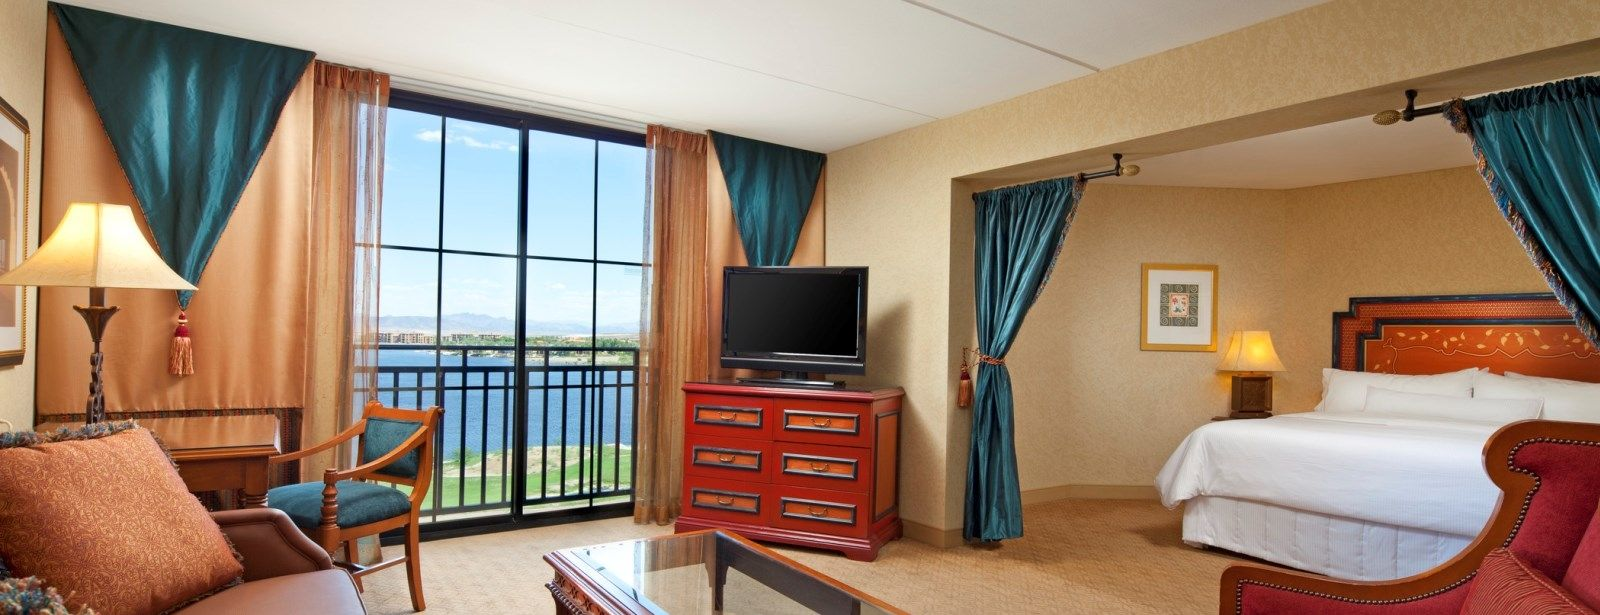 lake las vegas hotels - deluxe king suite